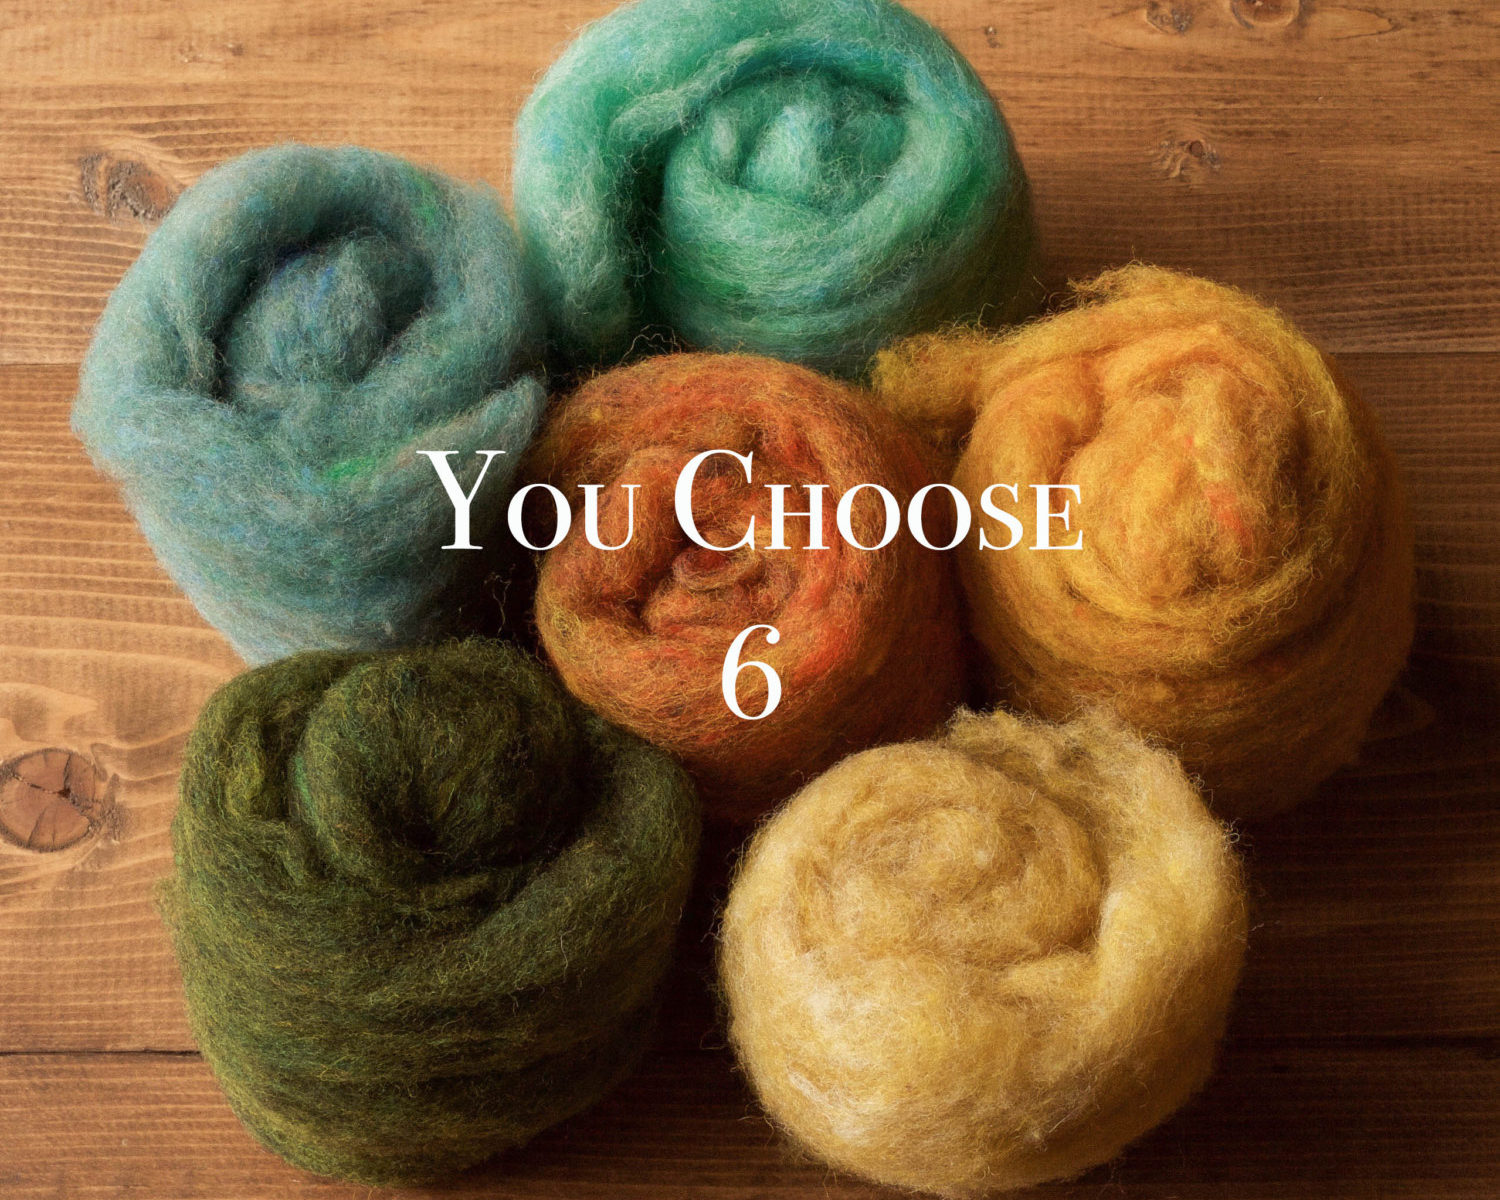 Needle Felting Wool Assortment, YOU CHOOSE 6, Customized Fiber Sampler, Batting, Batts, Wet Felting, Fiber Arts, Craft Supplies